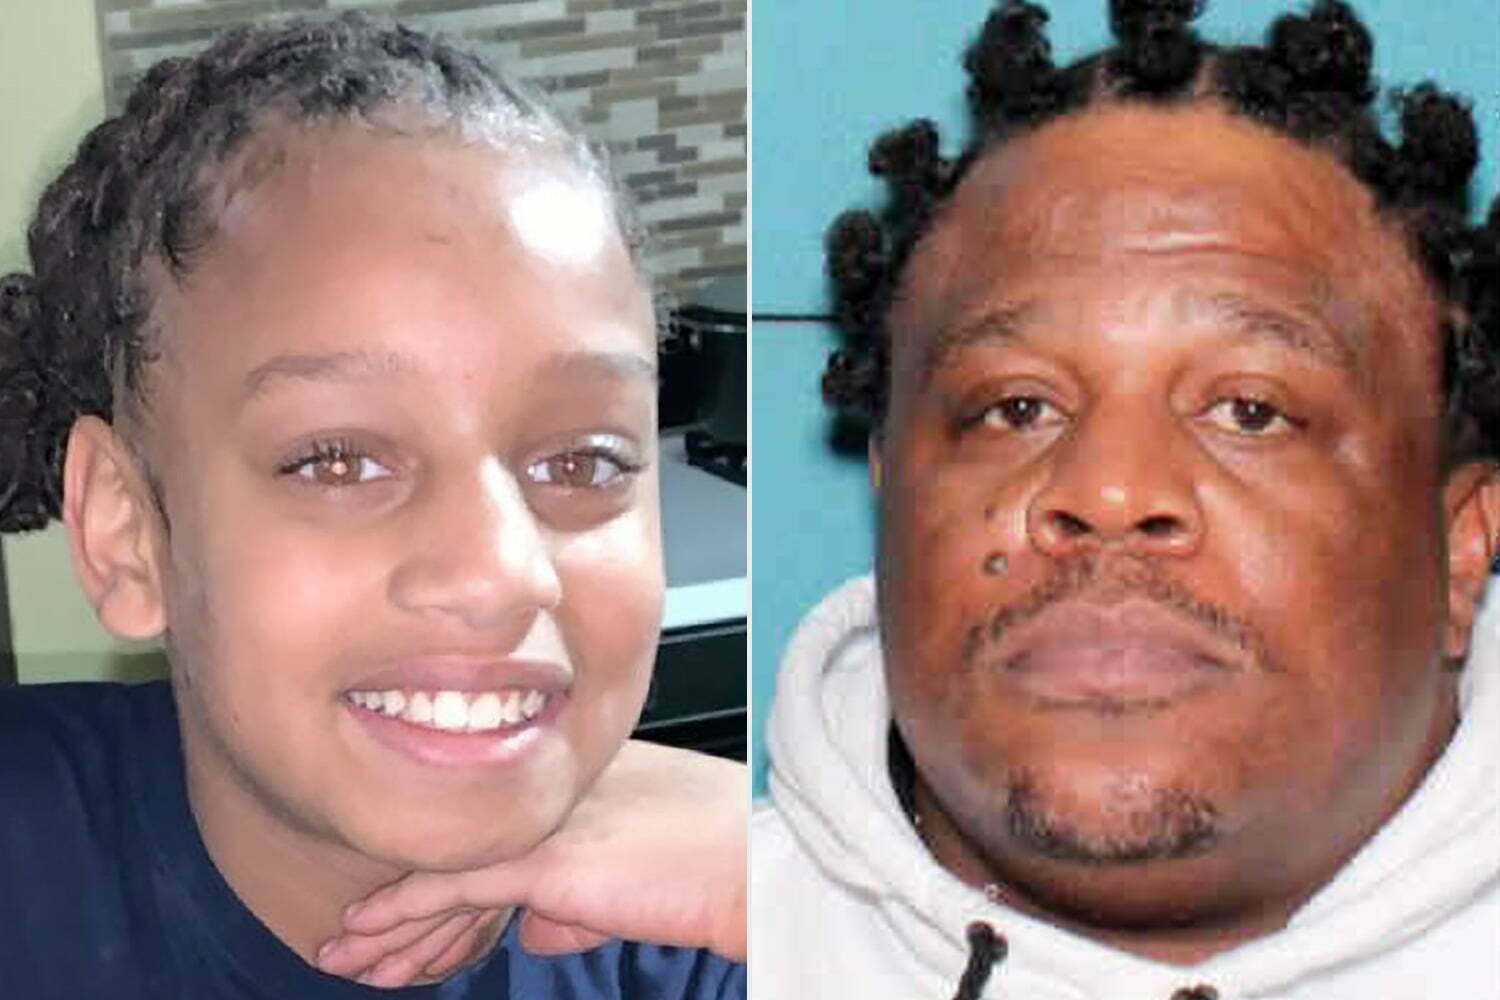 Breasia Terrell the lovable girl in Tiktok has disappeared Guilty wanted 1